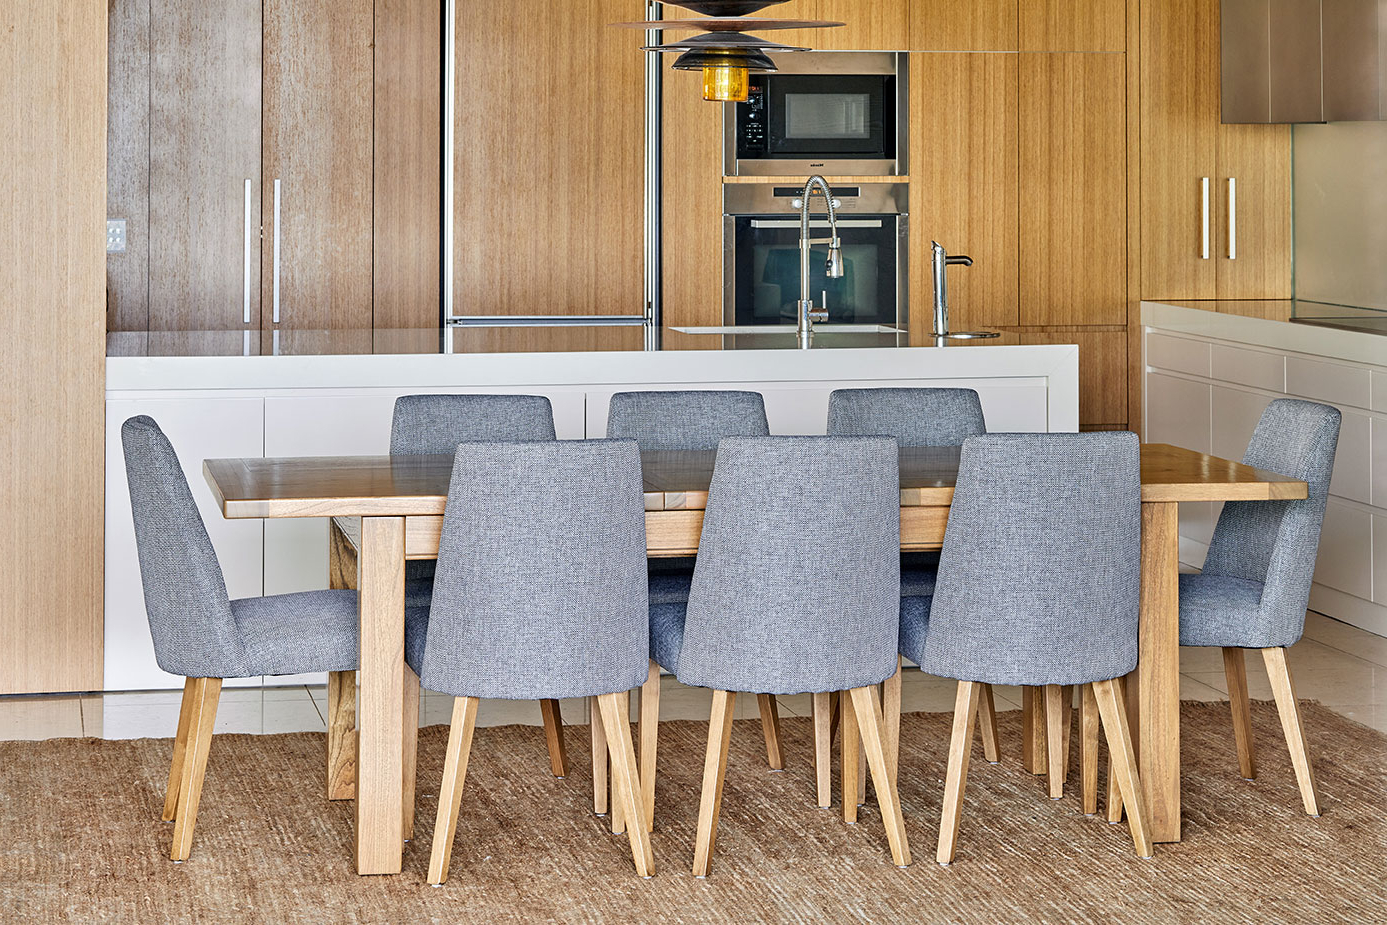 Most Recent How To Choose An Extension Dining Table » Shack Homewares With Regard To 8 Seater Wood Contemporary Dining Tables With Extension Leaf (View 15 of 25)